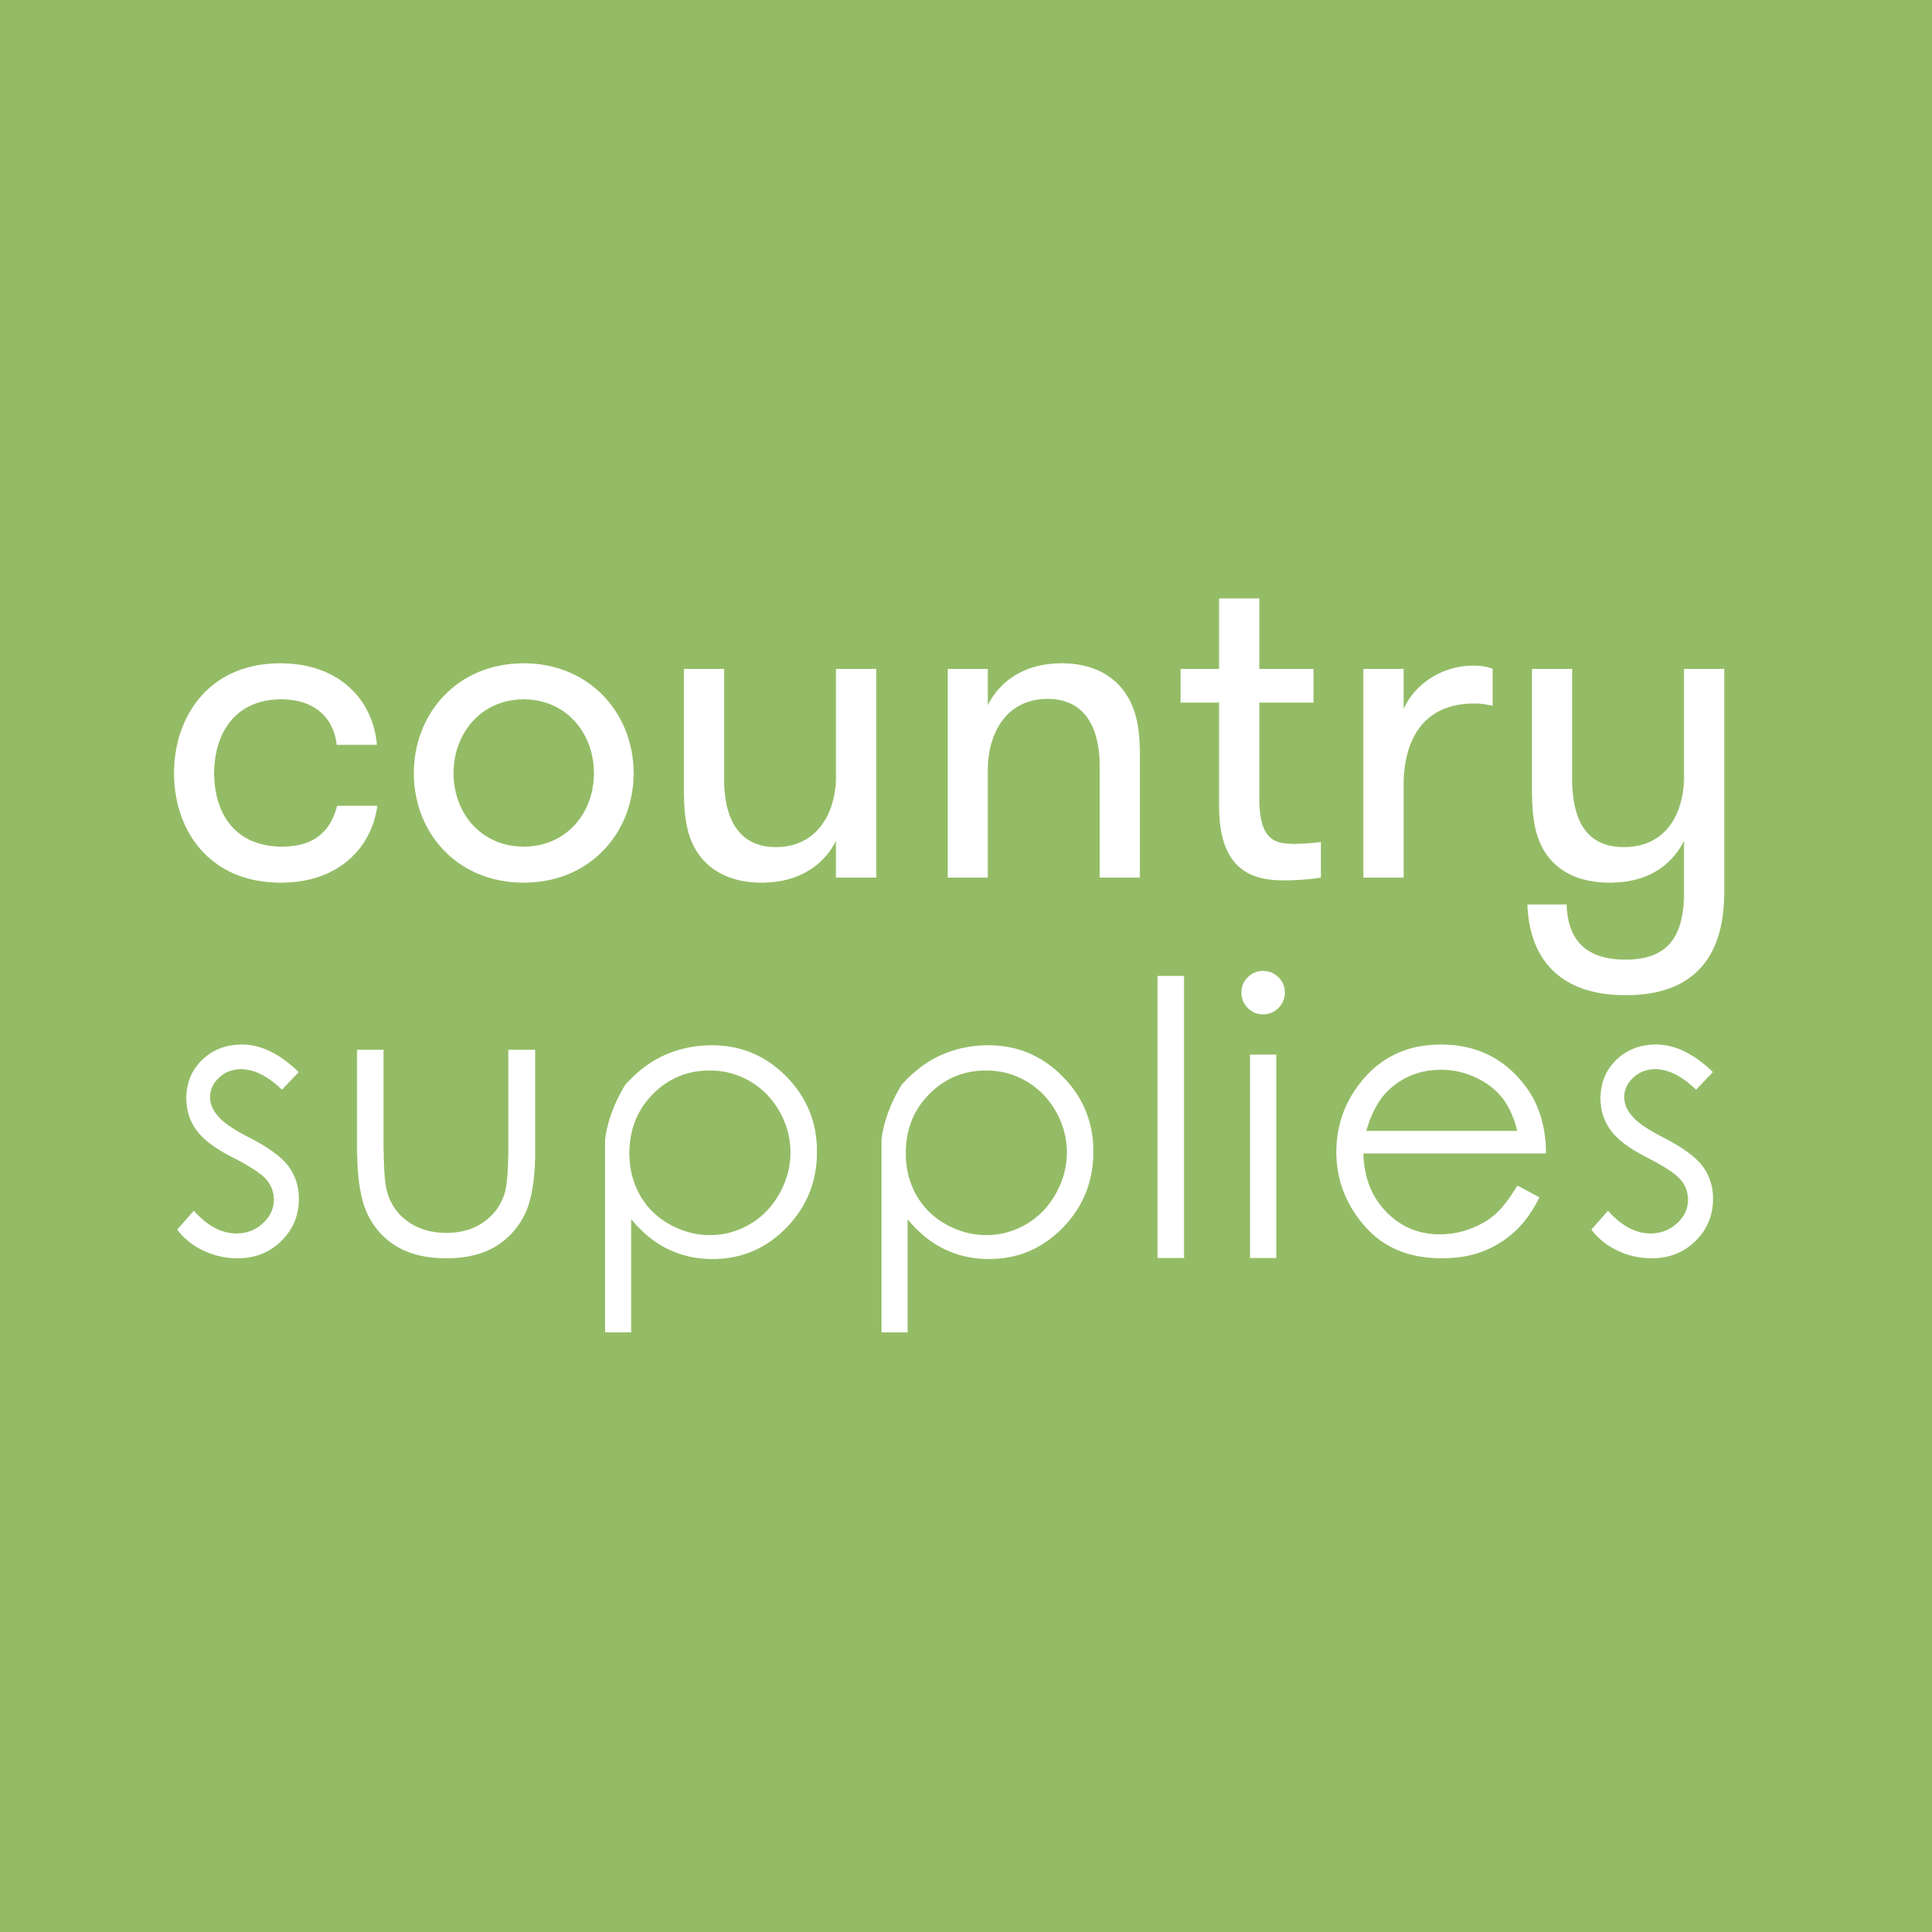 COUNTRY SUPPLIES-02.png